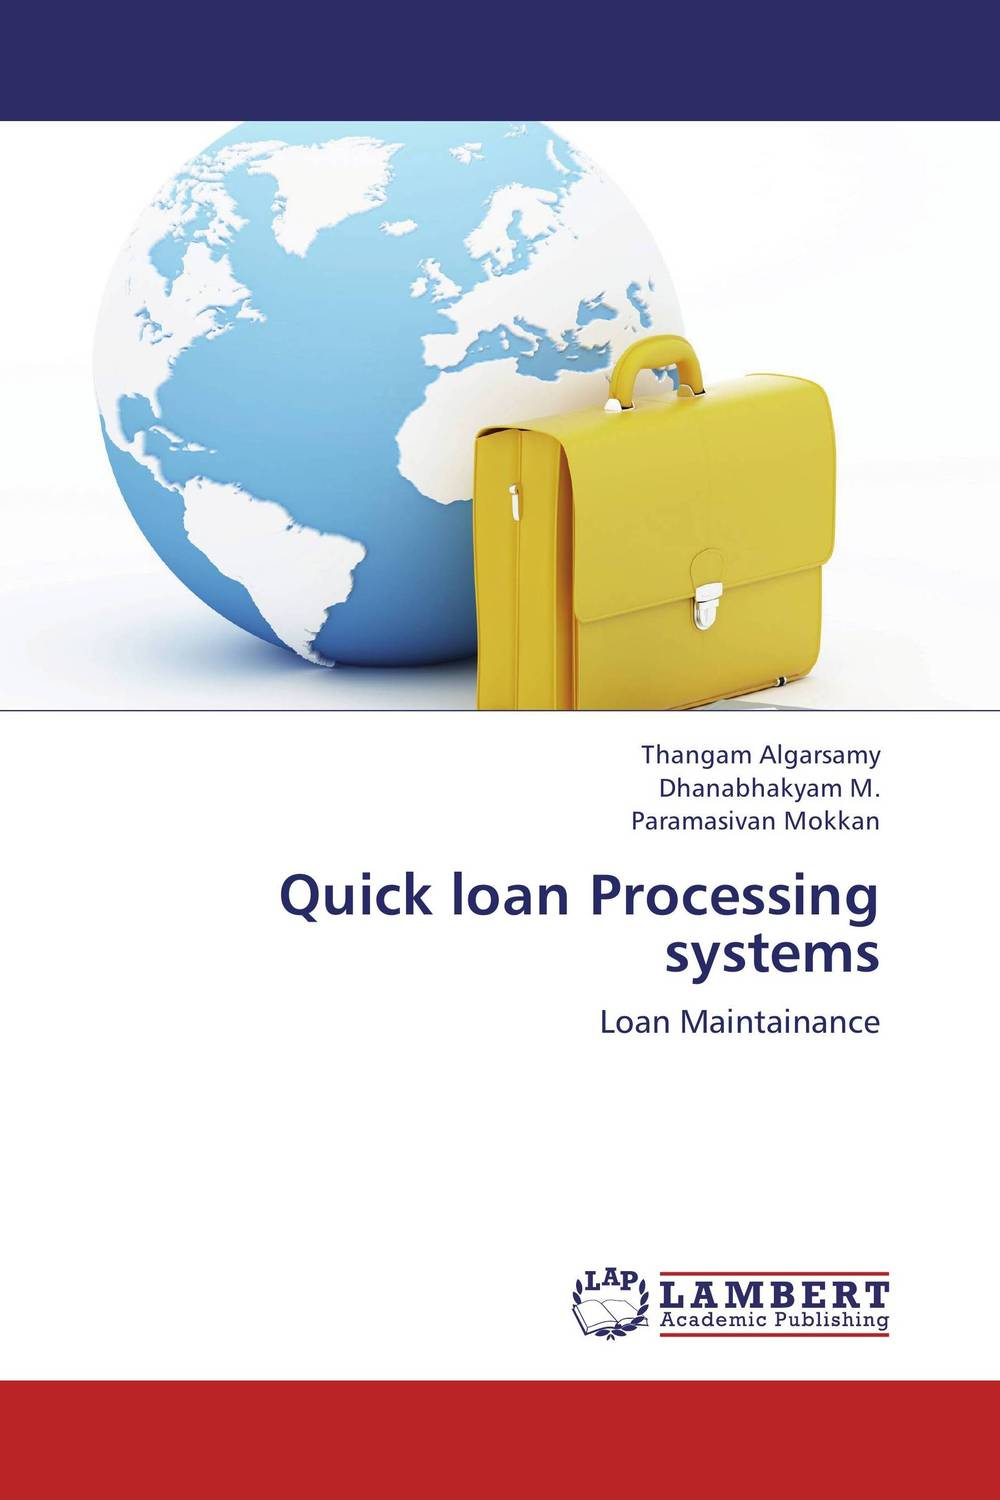 Quick loan Processing systems the lighye caste system